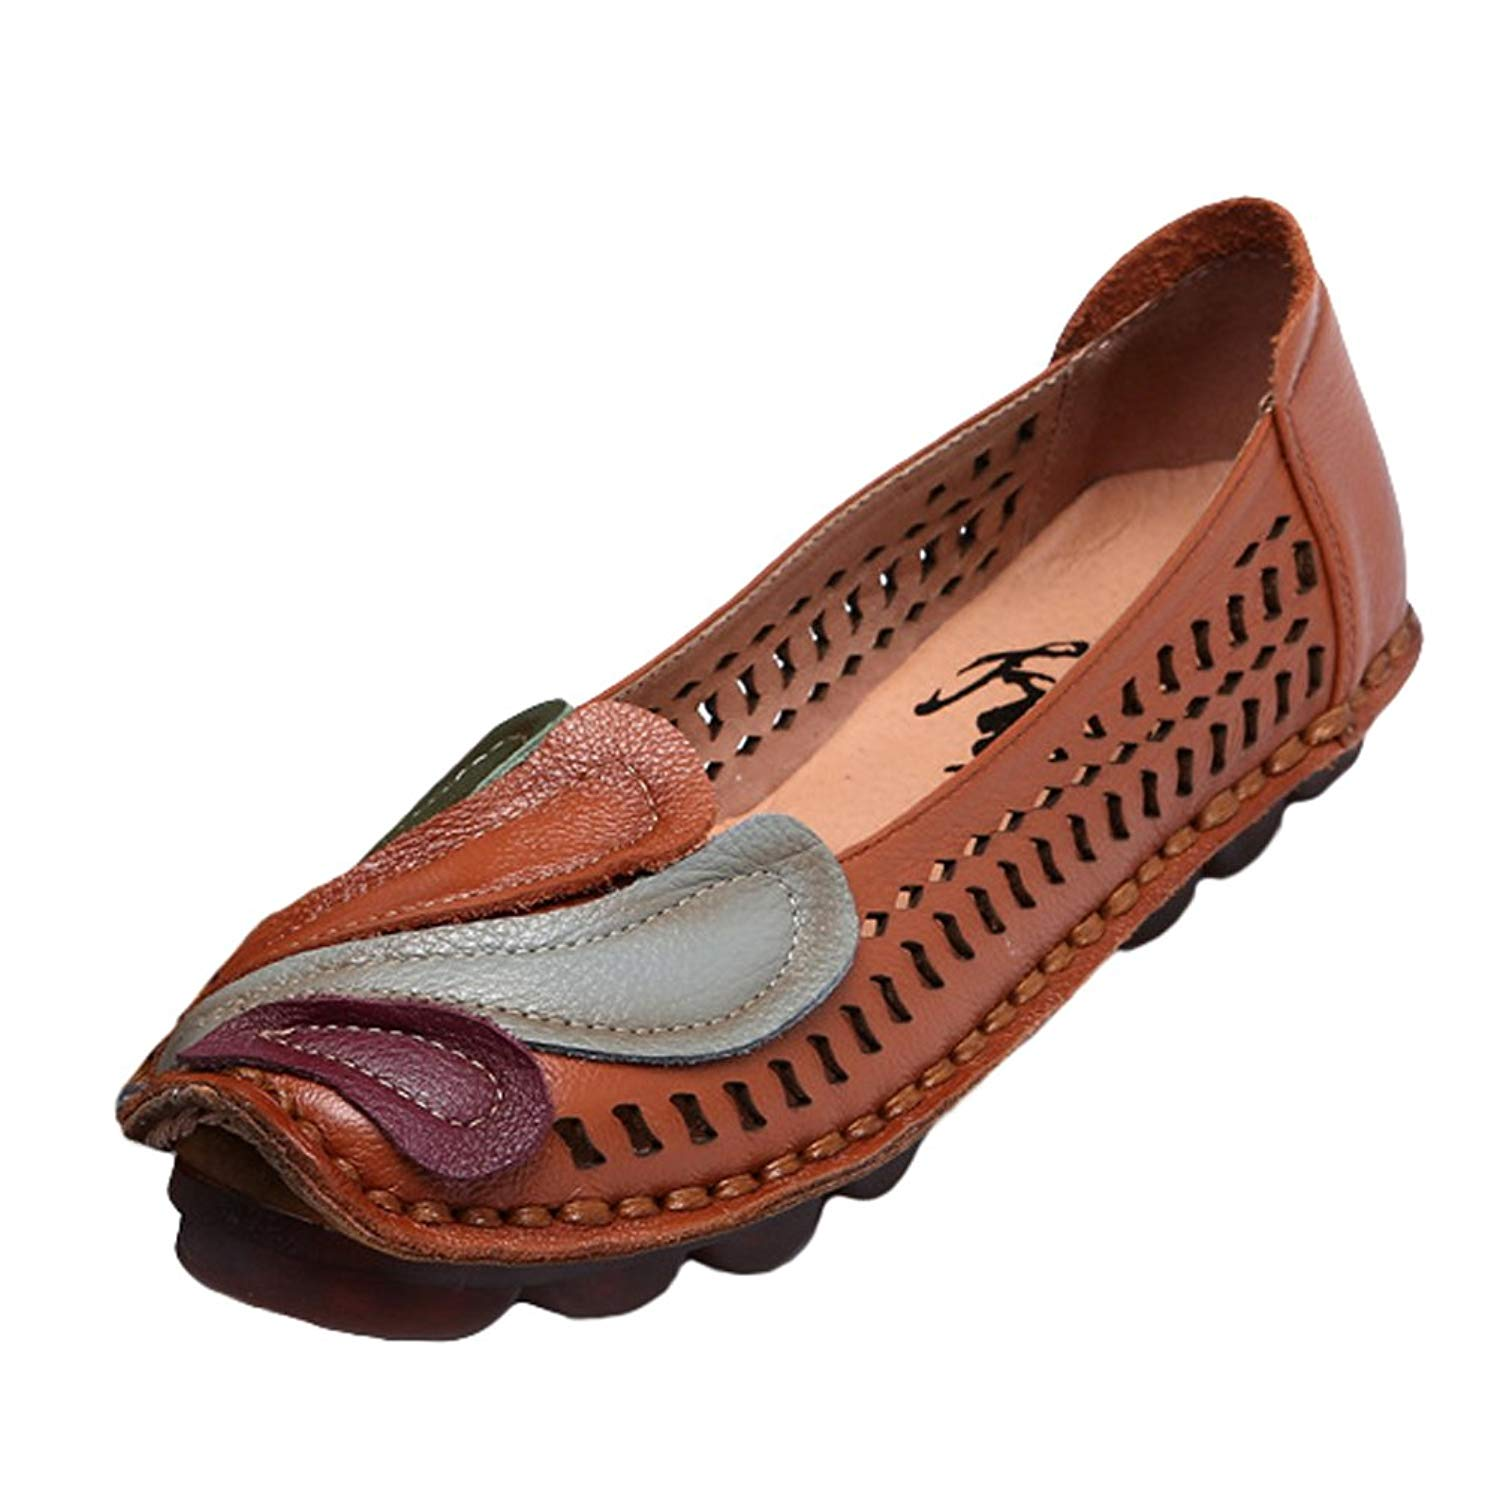 Mordenmiss Women's New Summer Handmade Flat Loafers Flower Pattern Leather Shoes Moccasins